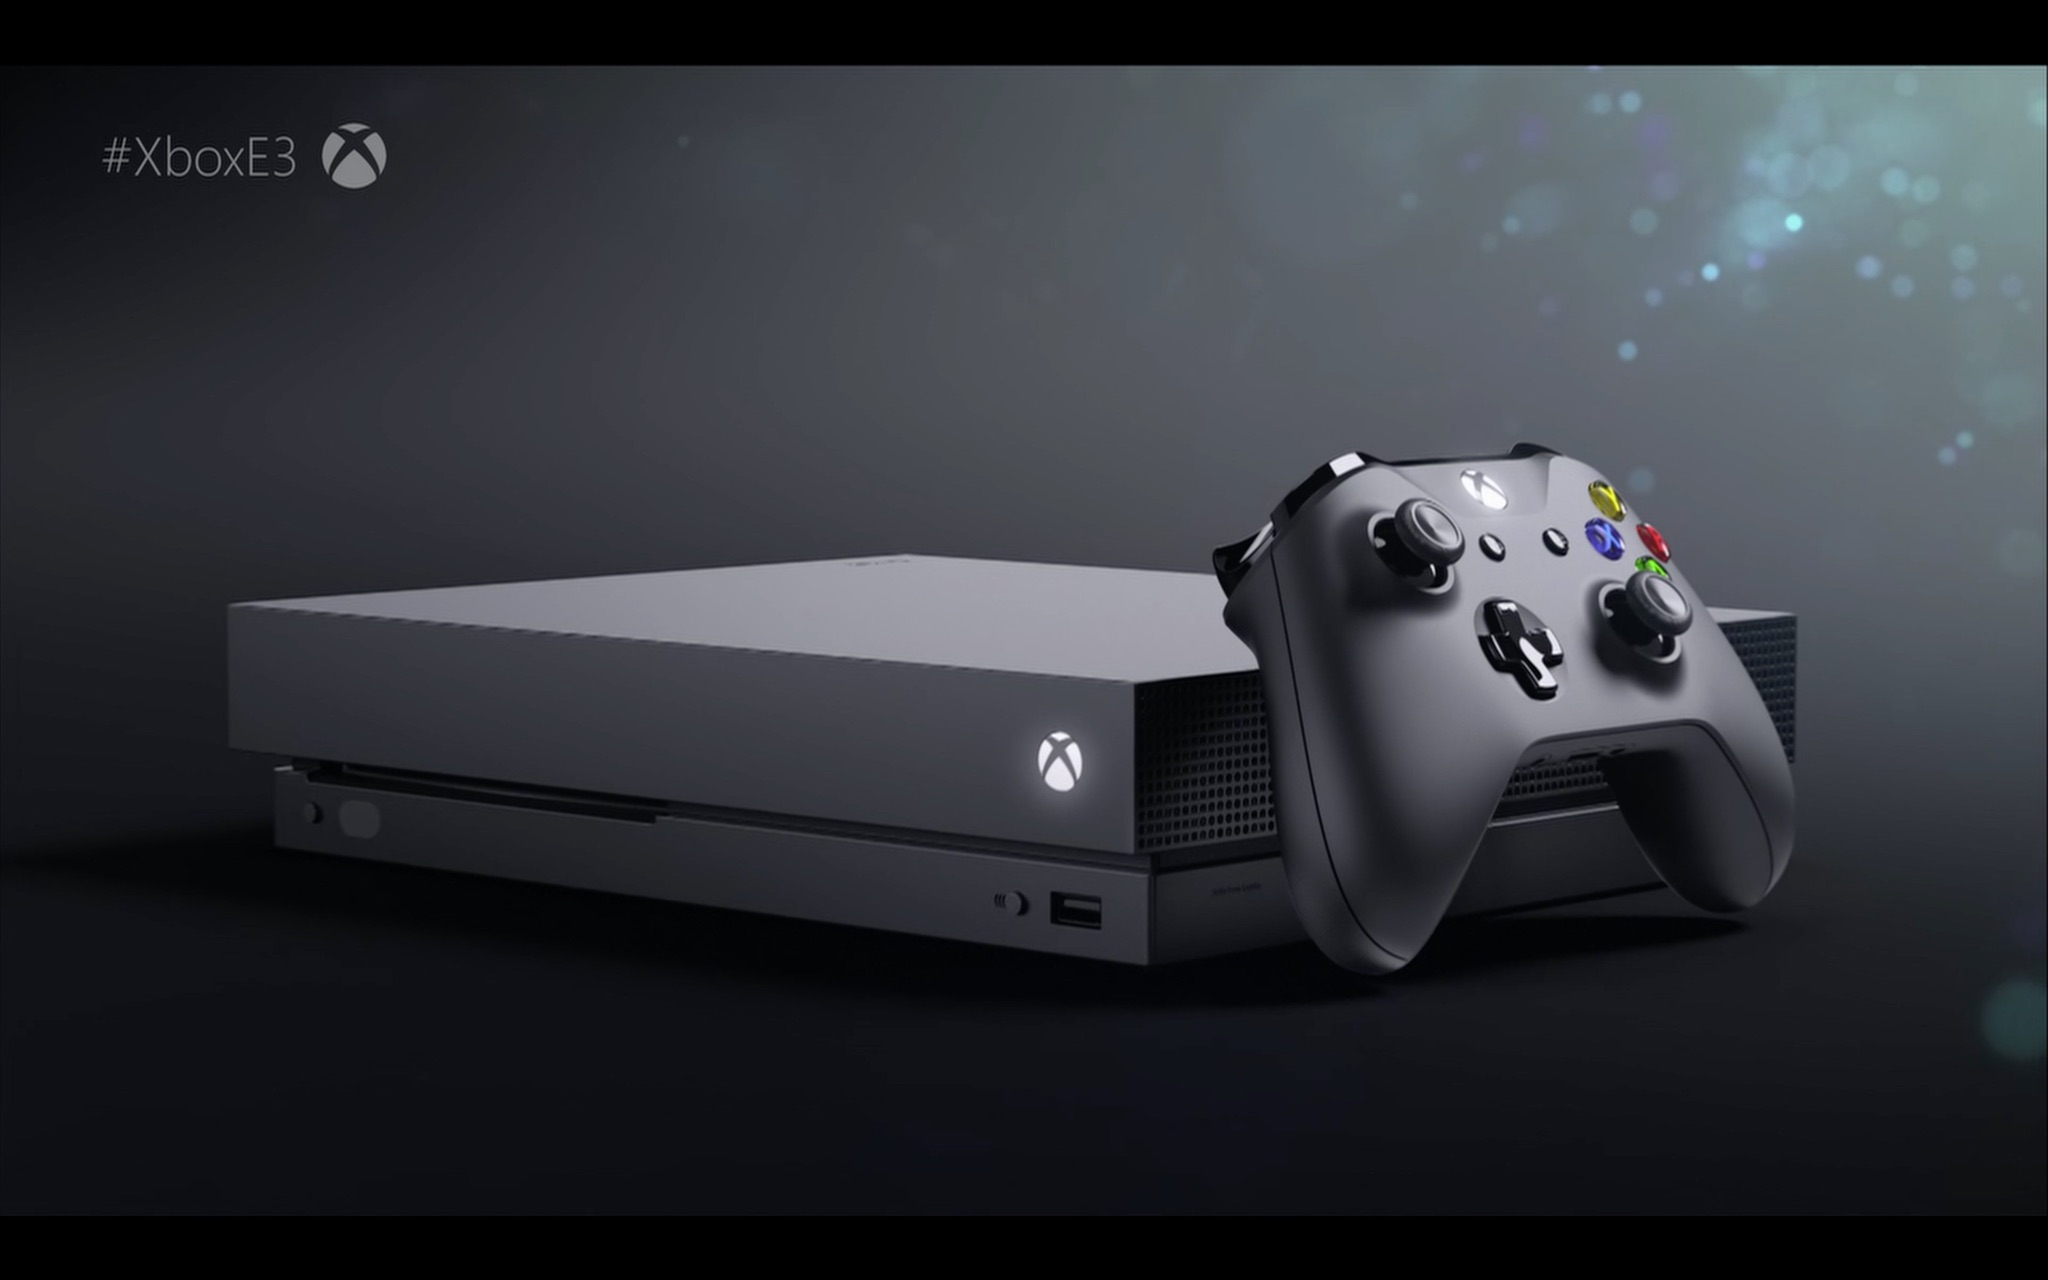 Microsoft: Xbox One Mouse and Keyboard Support Available at Developer Discretion